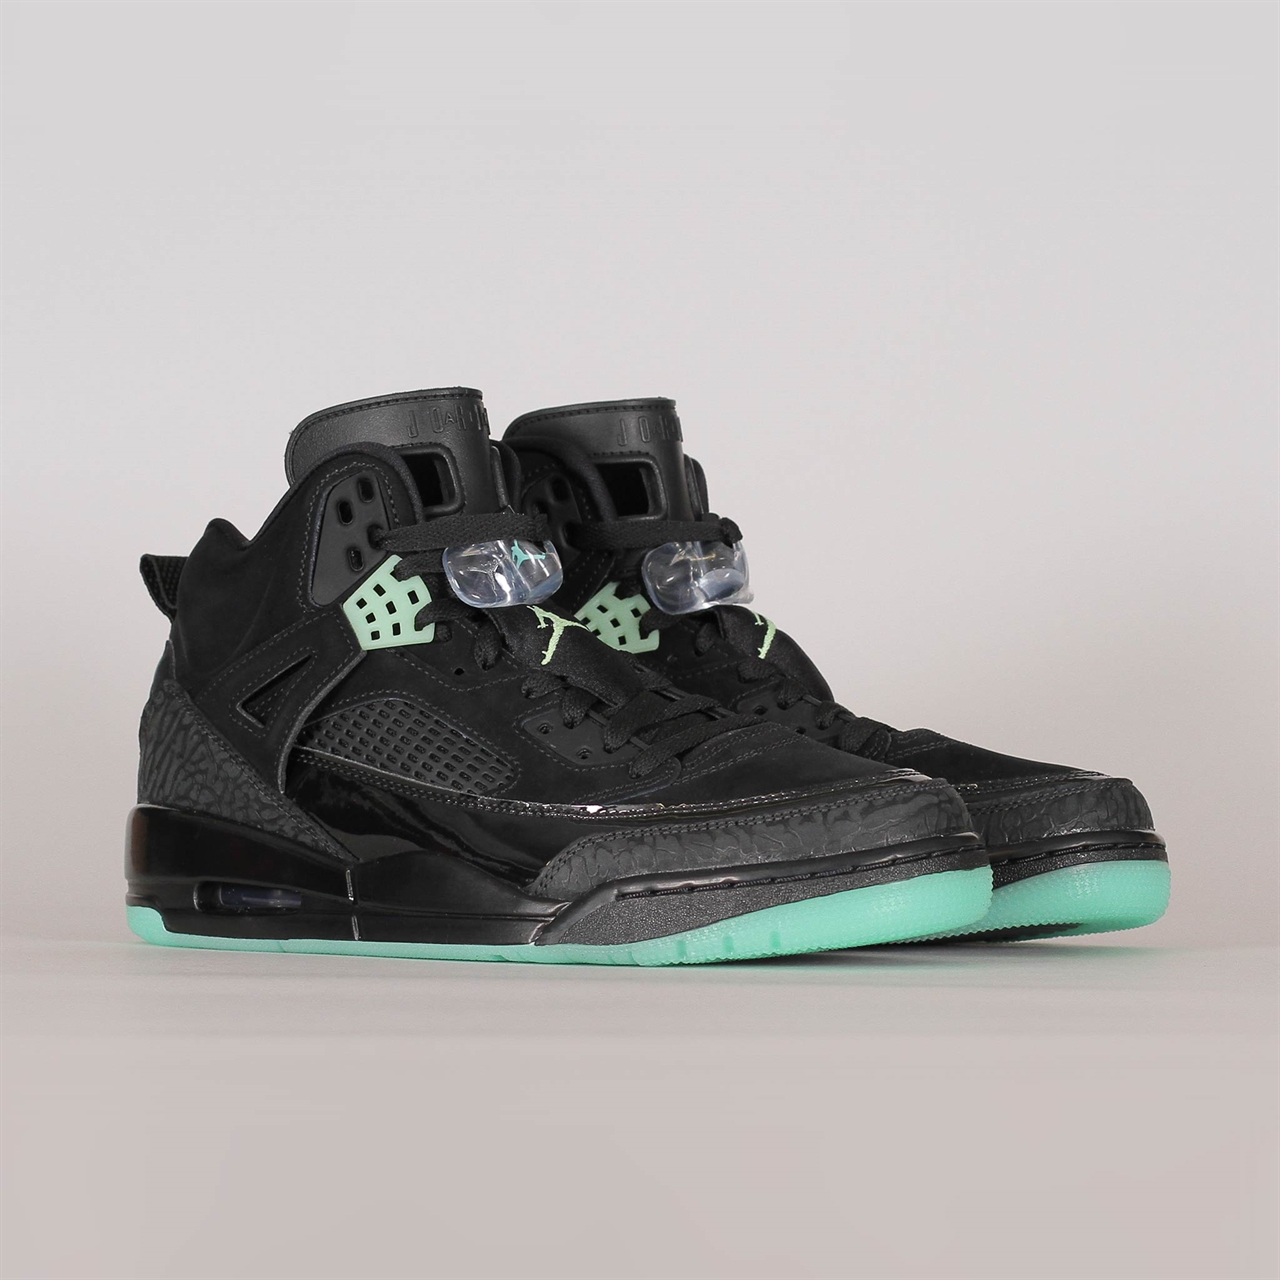 Implacable Medición para mi  Shelta - Nike Air Jordan Spizike Green Glow (315371-032)